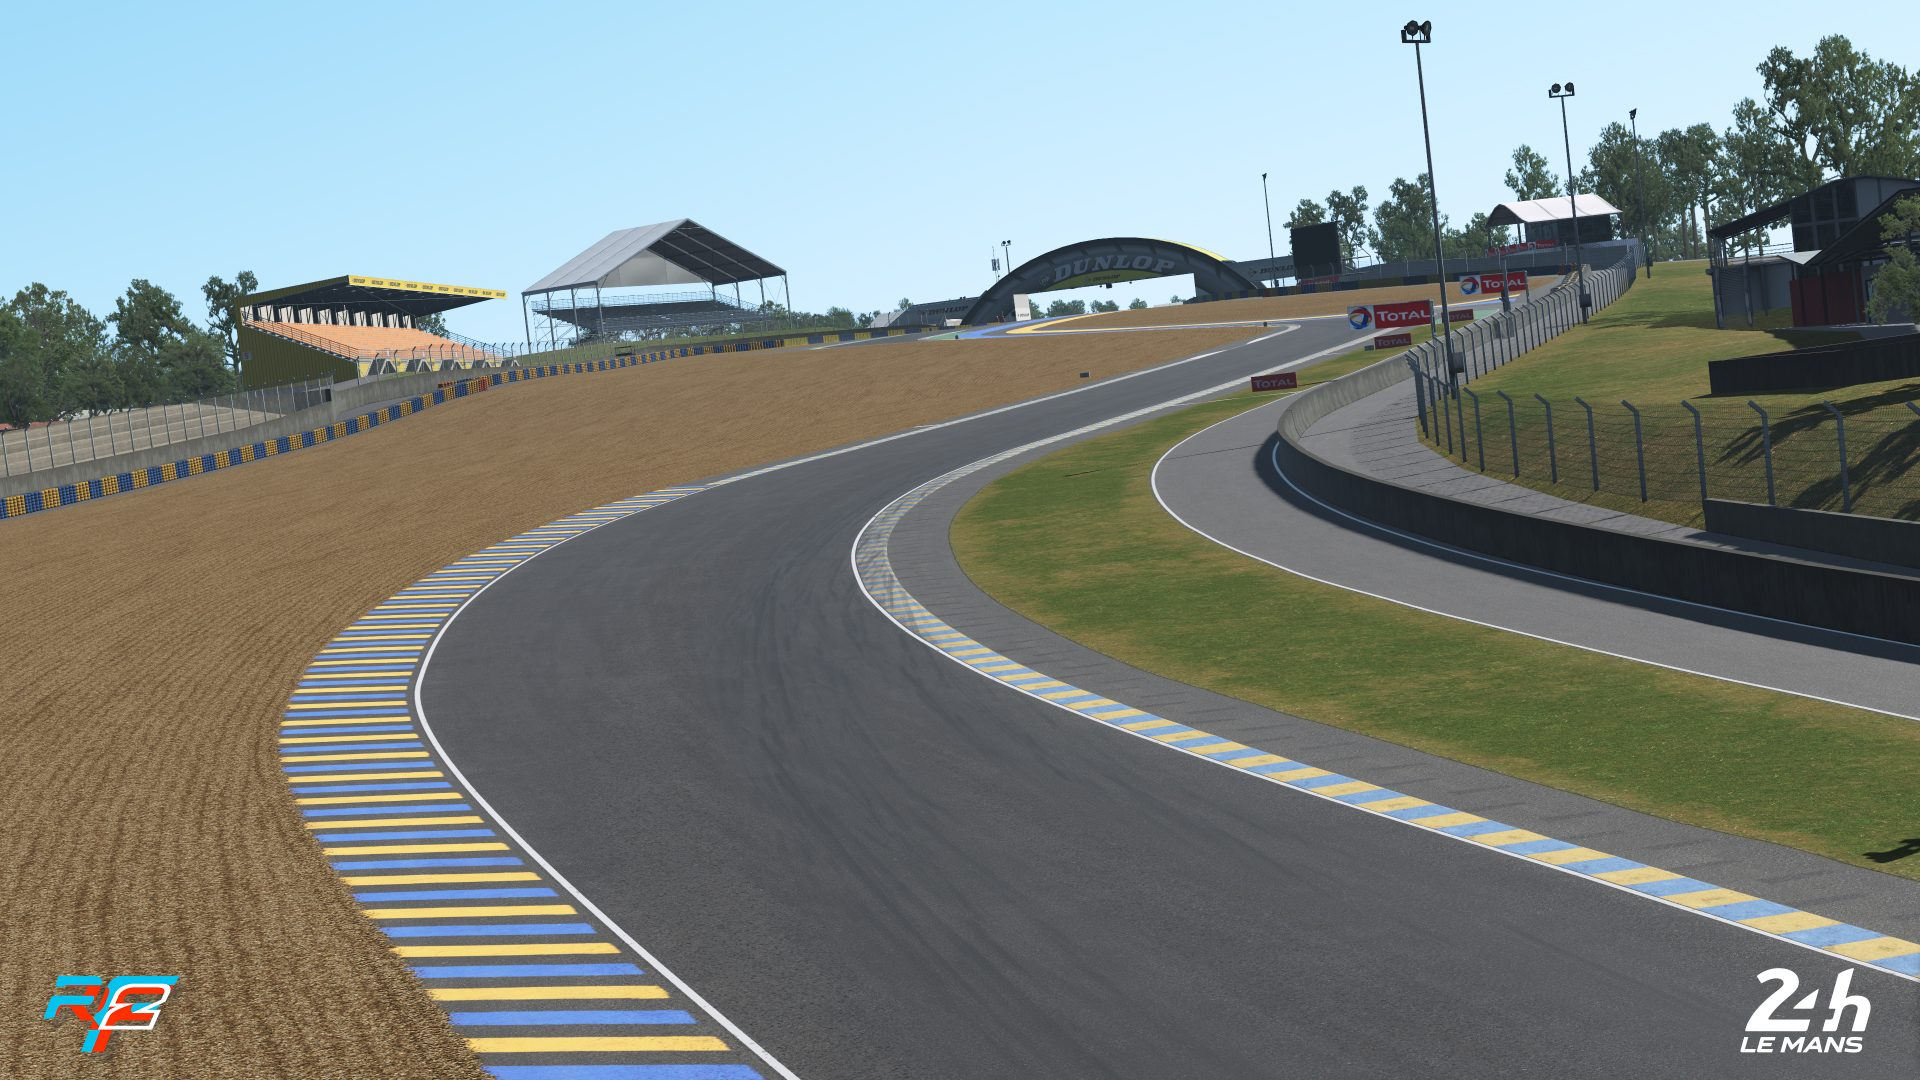 Le-Mans-track-guide-002-1920x1080.jpg